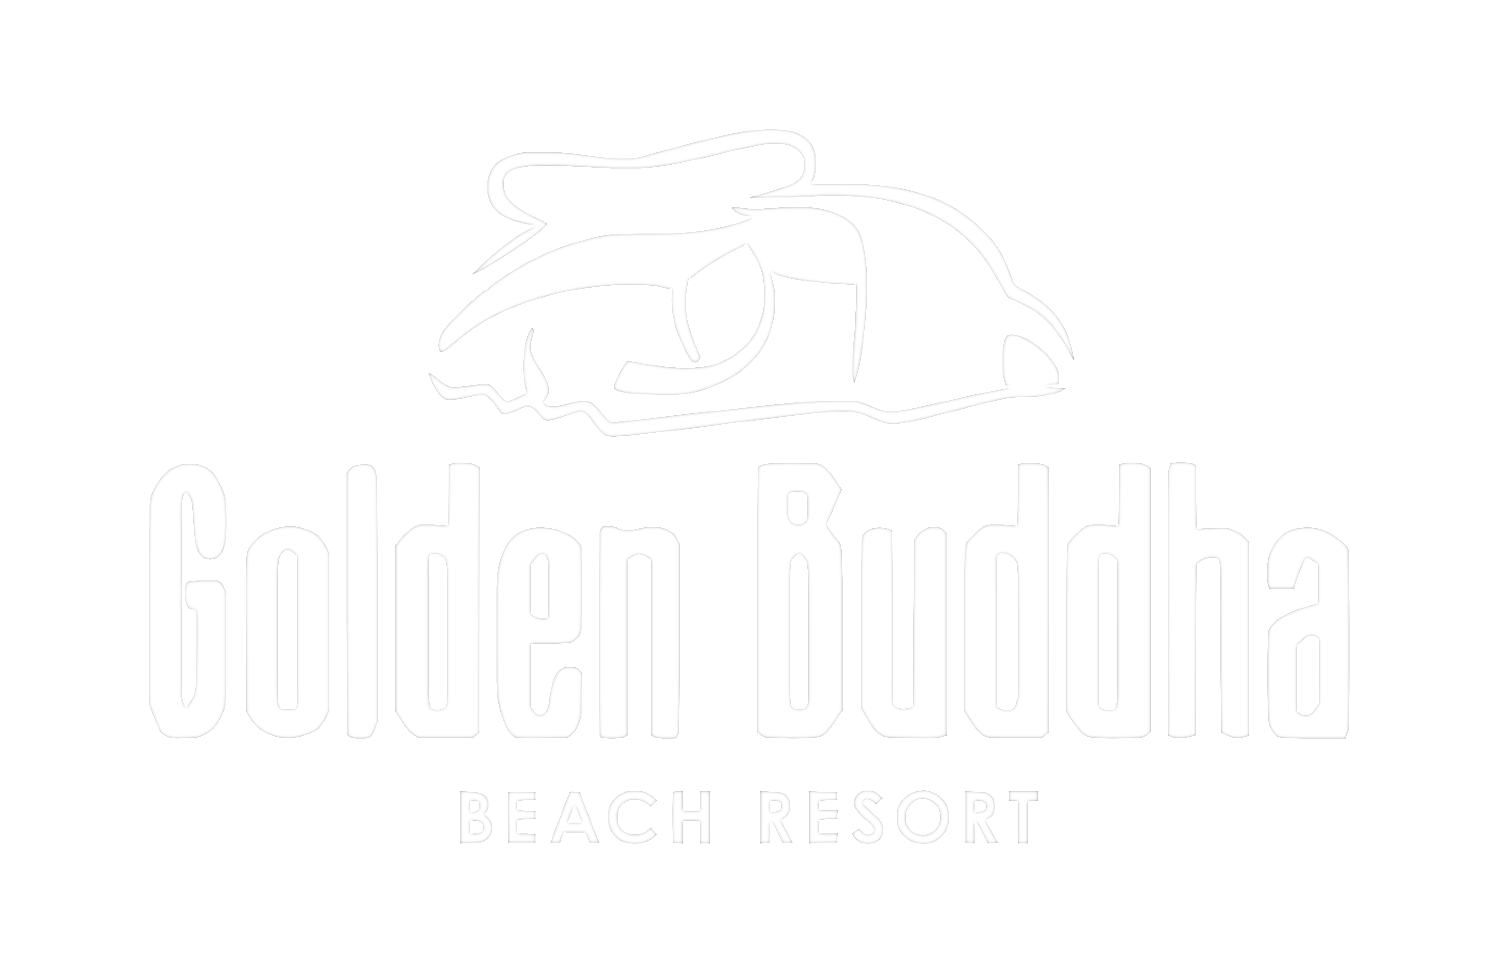 Golden Buddha Beach Resort